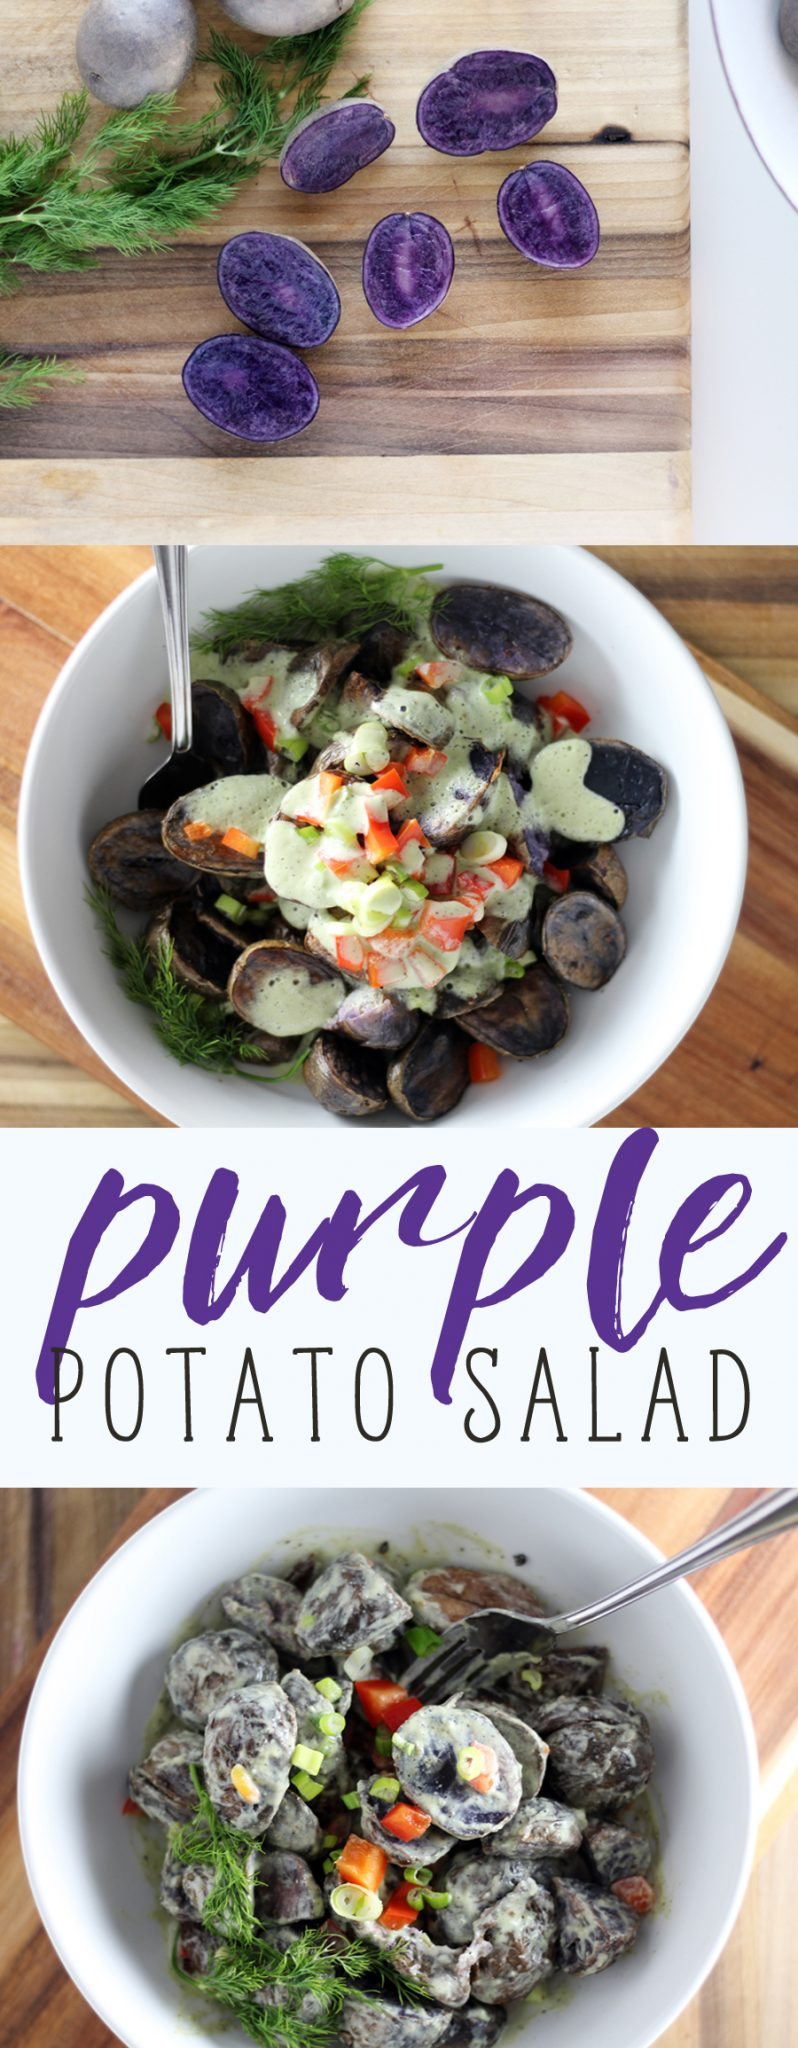 That's right. I said PURPLE potato salad. I've gone off the rails. We've put a colorful spin on a Southern classic recipe. I absolutely adore the vibrant color and nutty sweet flavor of these petite potatoes. #purplepotato